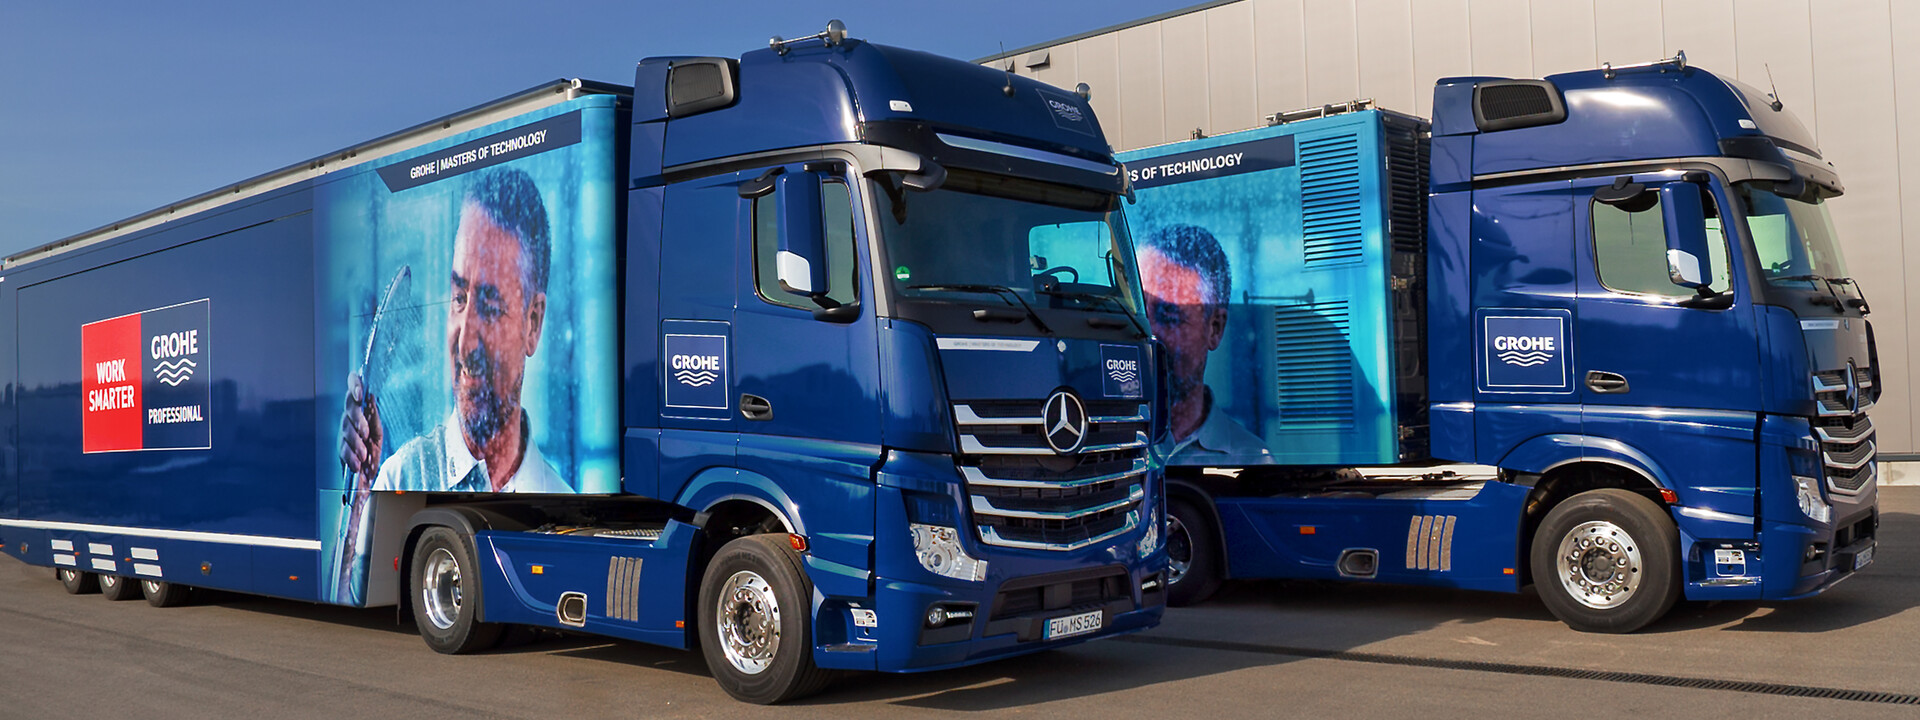 GIANT Grohe Showtrucks